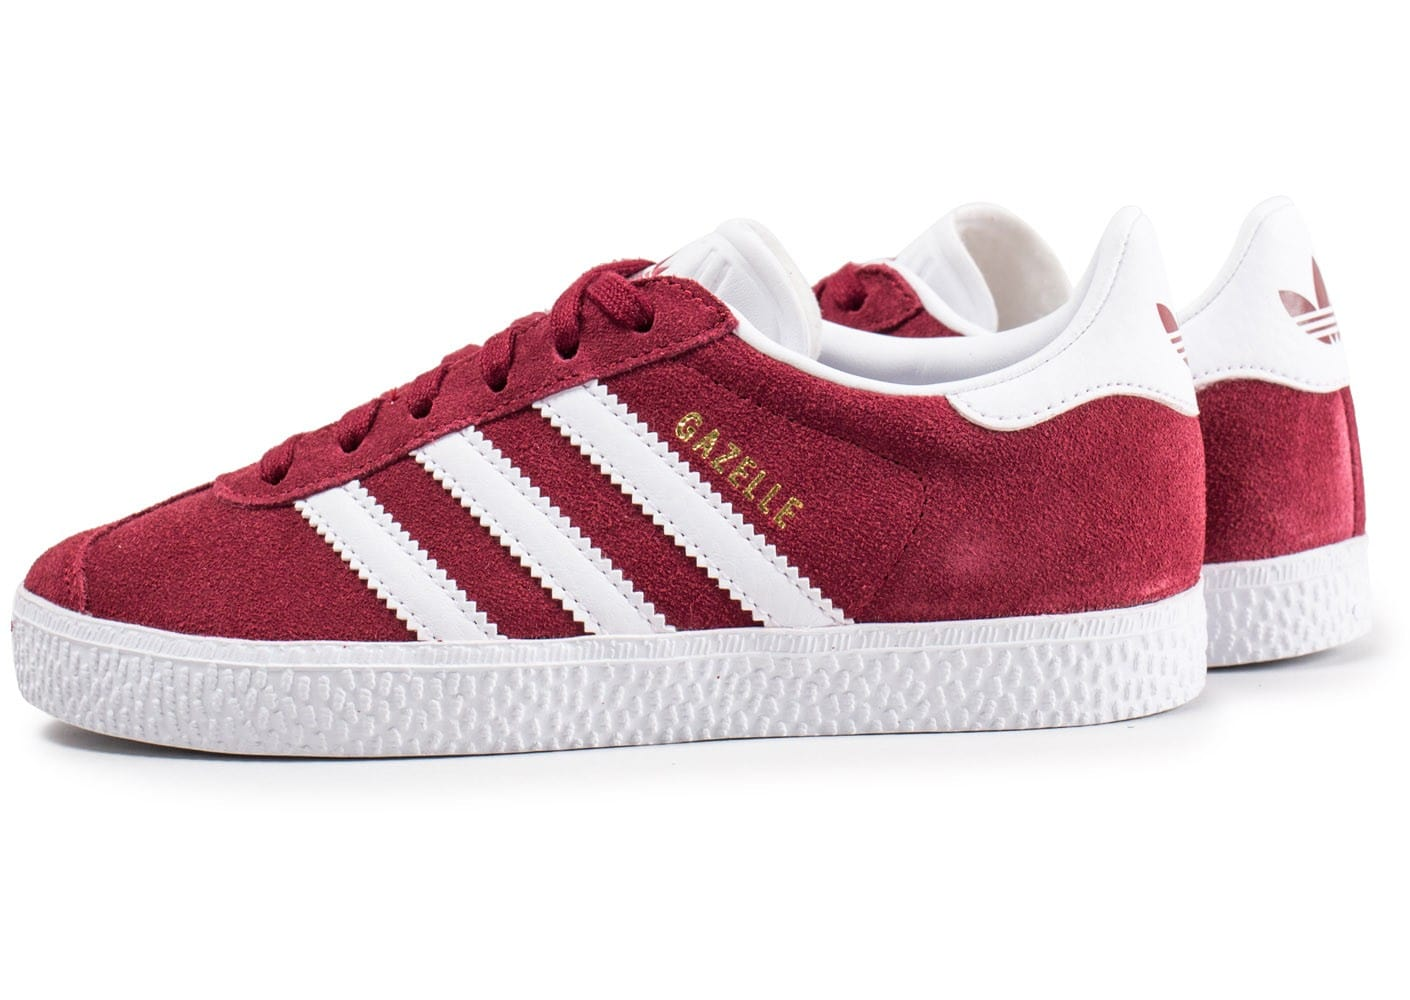 magasin chaussure adidas bordeaux